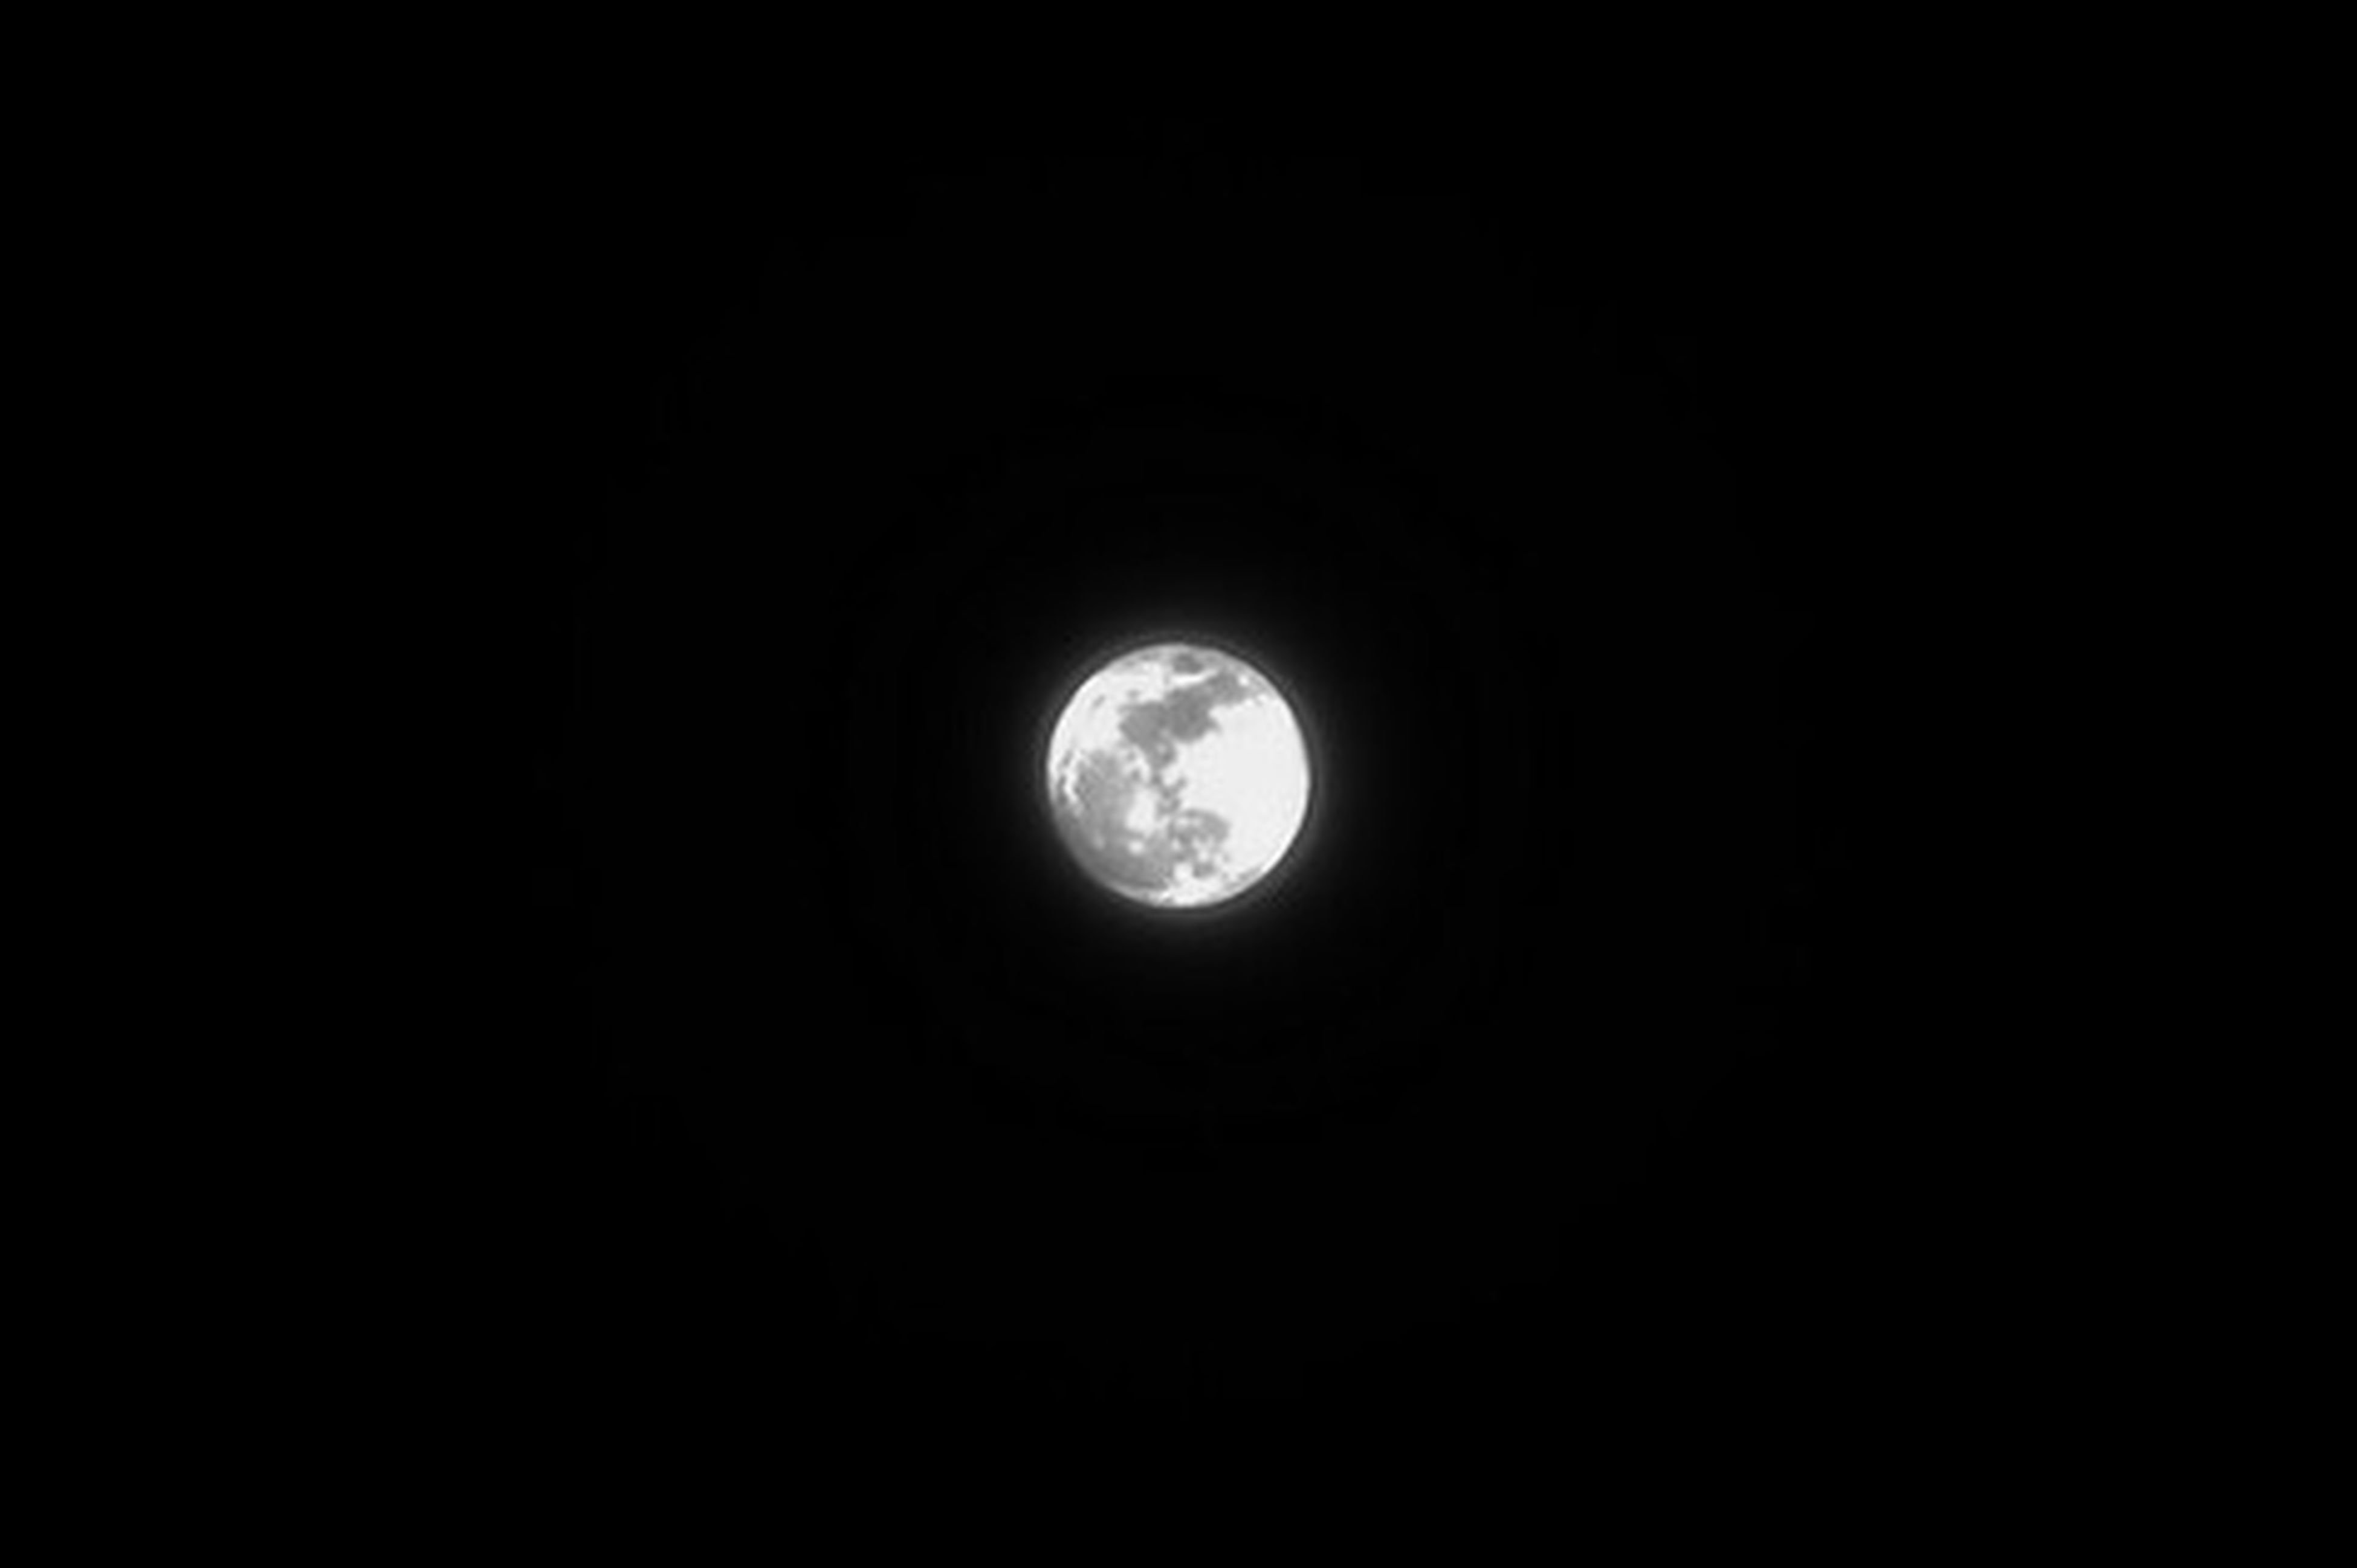 circle, dark, copy space, moon, night, astronomy, low angle view, sky, scenics, full moon, nature, beauty in nature, planetary moon, tranquility, clear sky, tranquil scene, no people, geometric shape, majestic, glowing